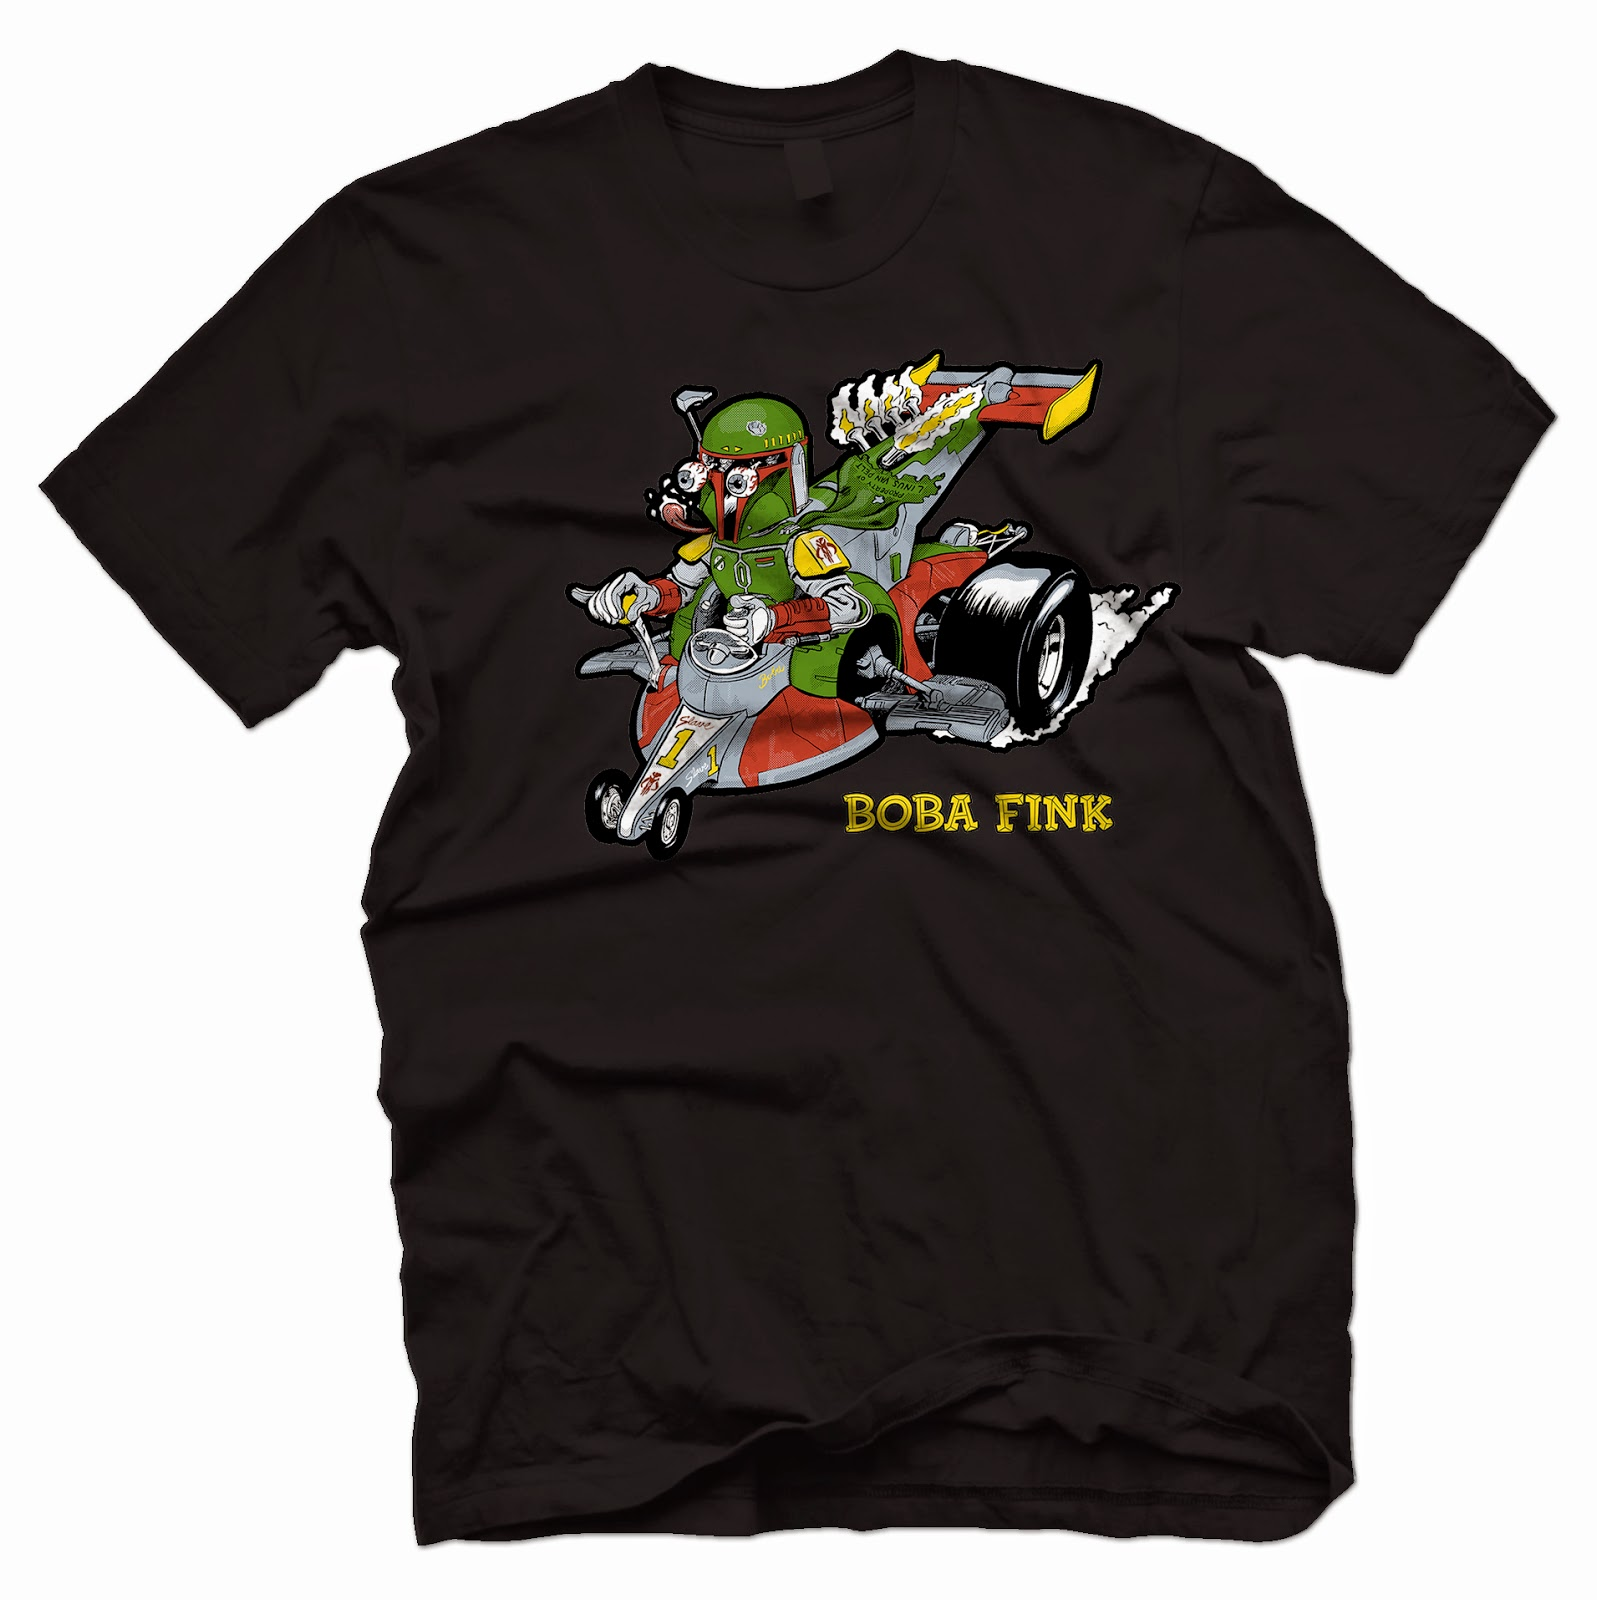 Boba Fink Star Wars T-Shirt by Manly Art & Outsmart Originals